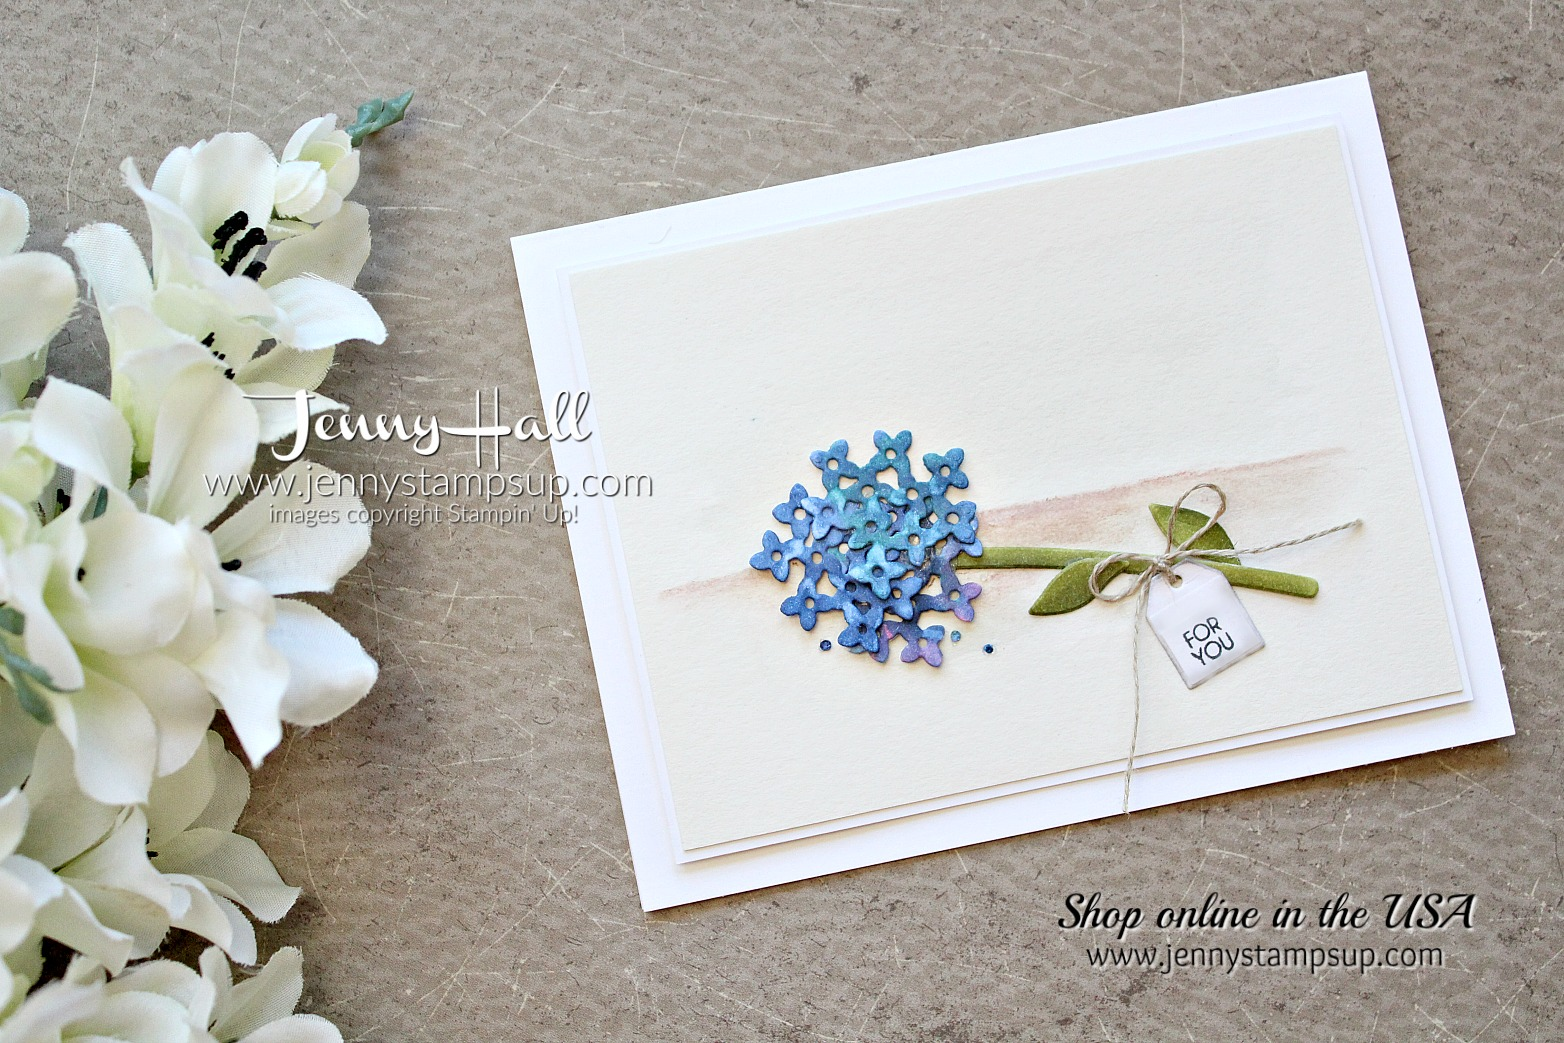 Beautiful Bouquet clean and simple card by Jenny Hall at www.jennystampsup.com for #cardmaking #stampinup #scrapbooking #watercolor #cardmakingtechniques #jennystampsup #jennyhalldesign #jennyhallstampinup #cardmakingchallenge #beautifulbouquet and more!